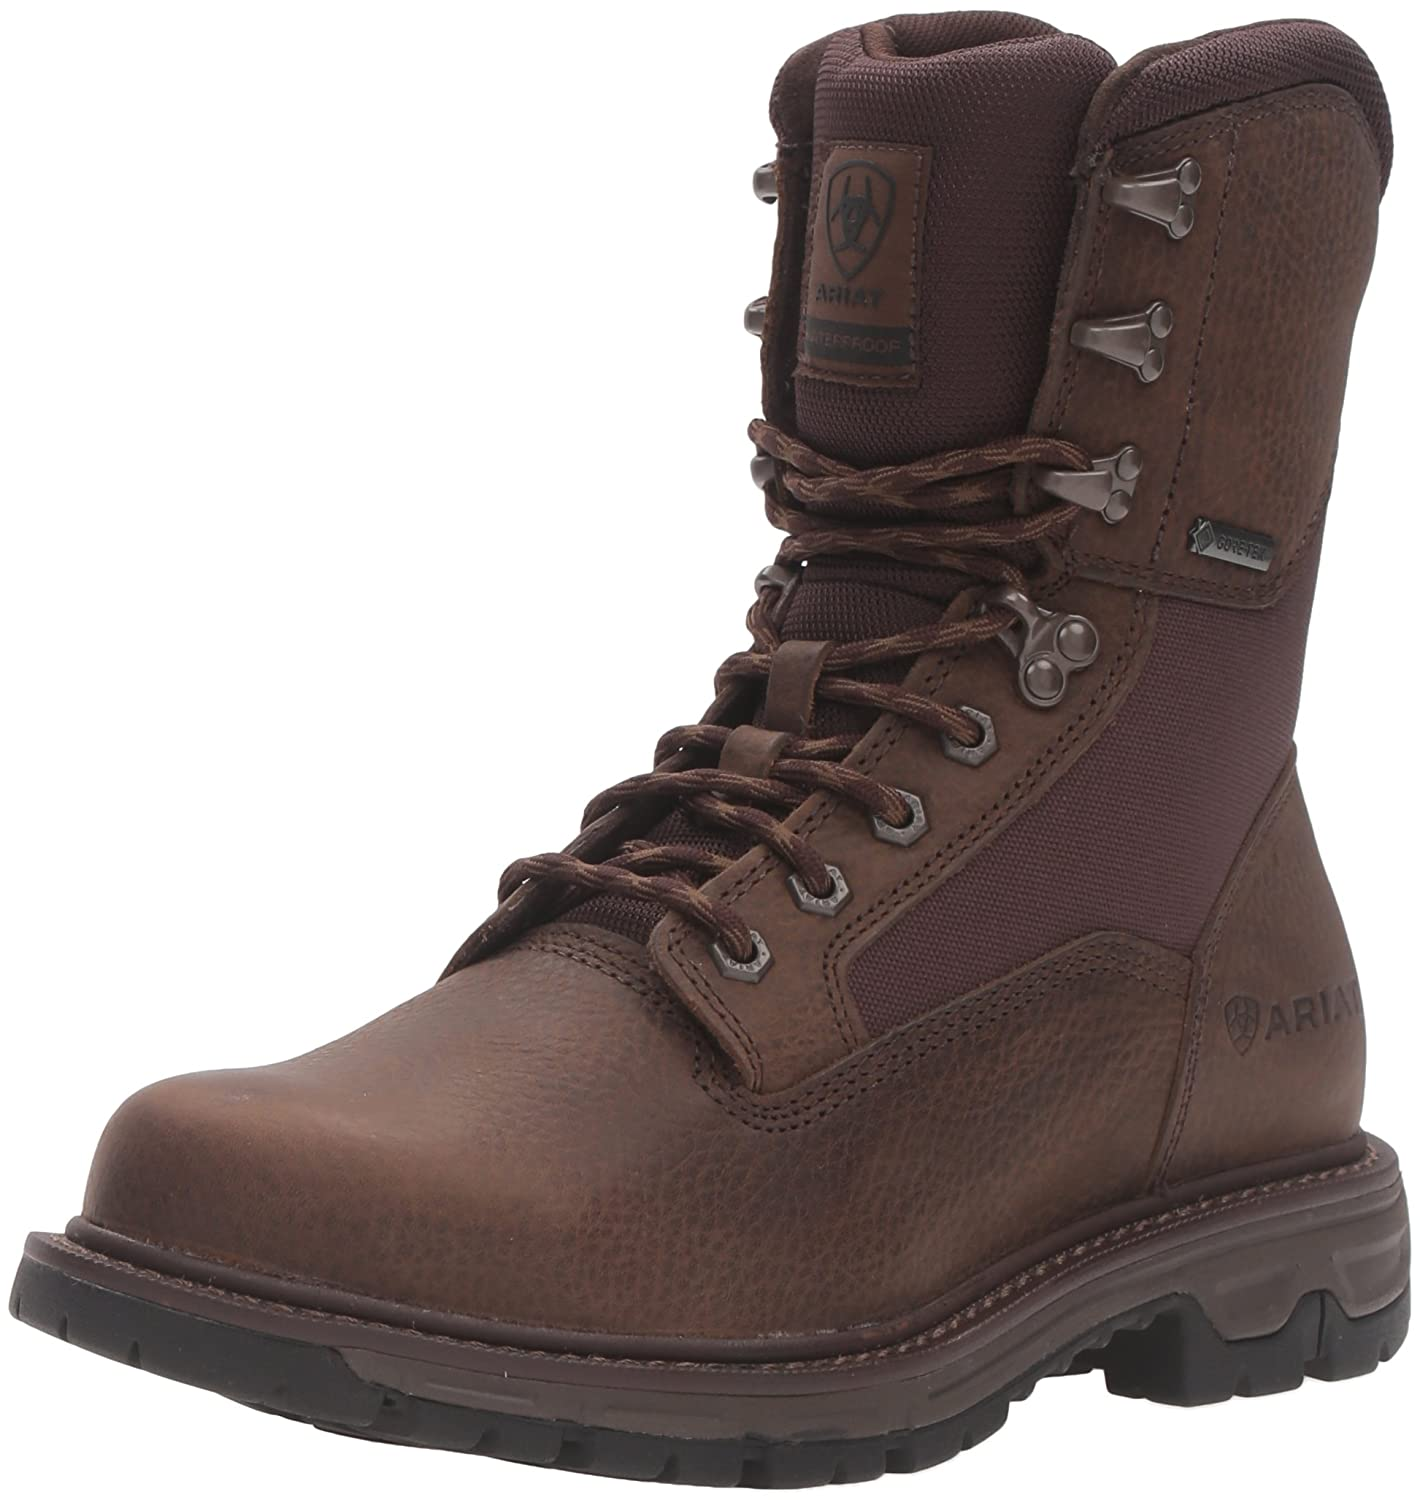 - Ariat Men's Conquest Round Toe 8  GTX Hunting Boot, Pebbled Brown, 11 2E US